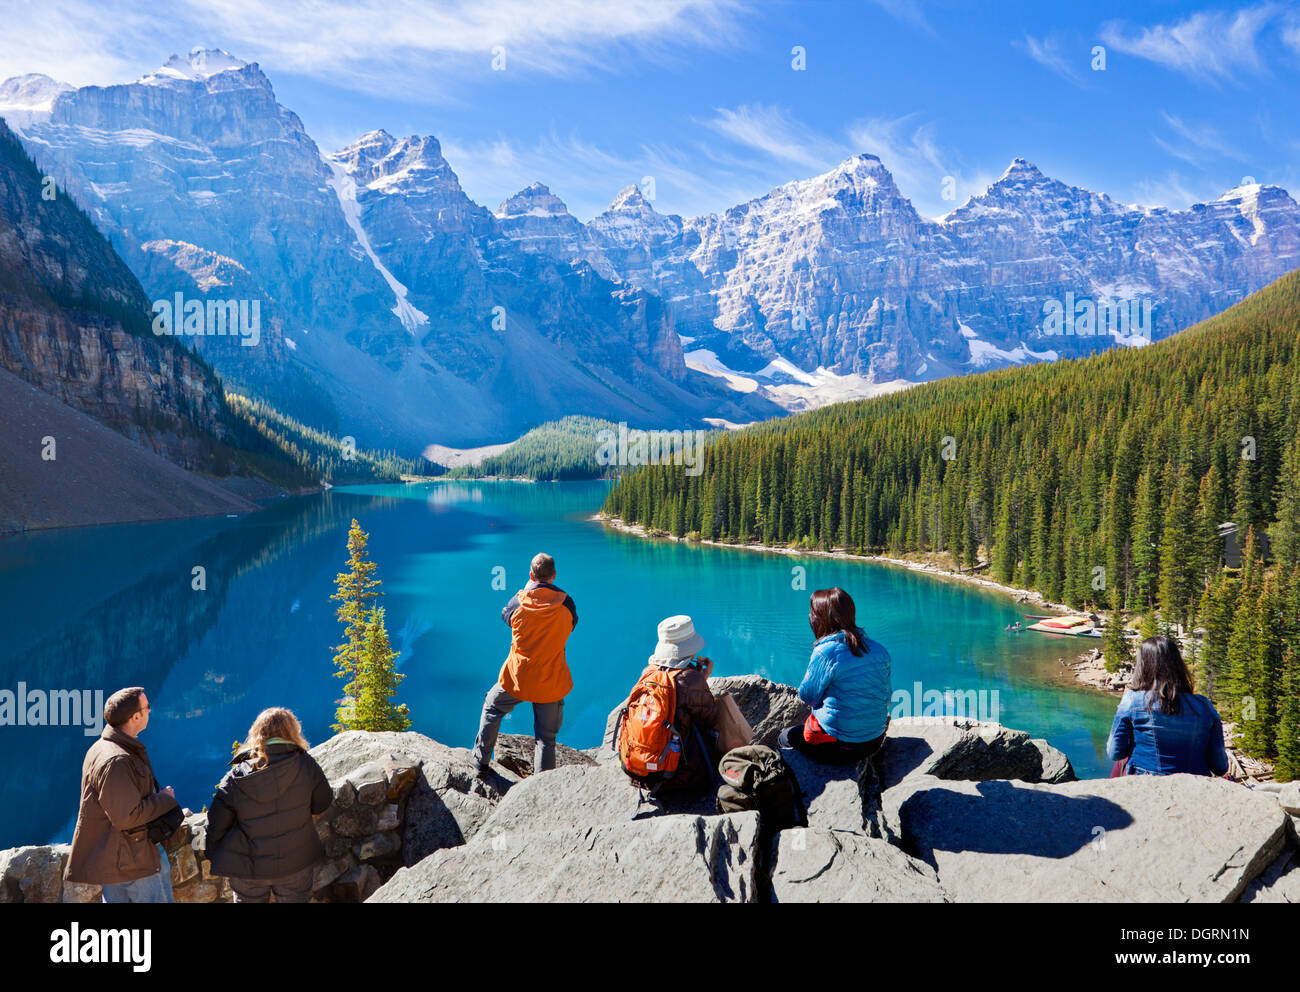 Tourists looking at Moraine lake in the Valley of the Ten Peaks Banff national park Alberta Canada - Stock Image